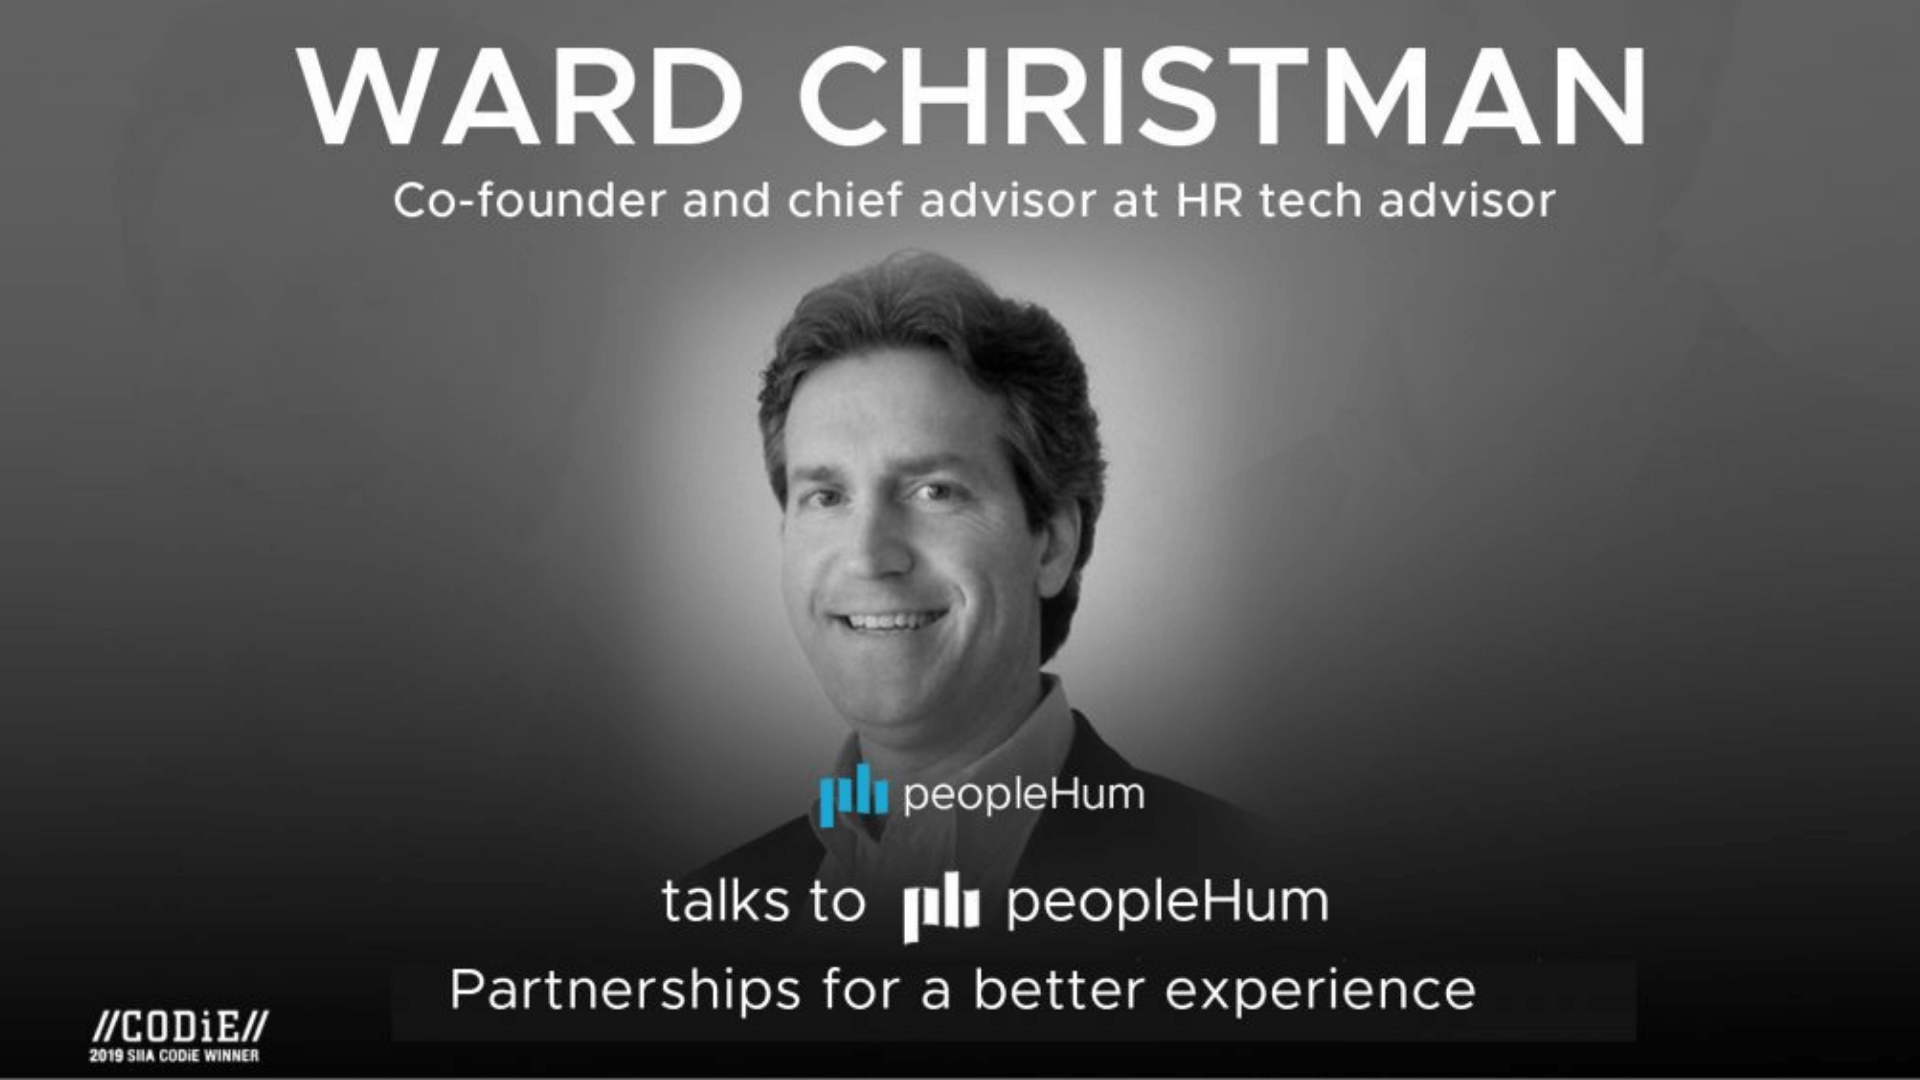 Partnerships for a better experience - Ward Christman [Interview]